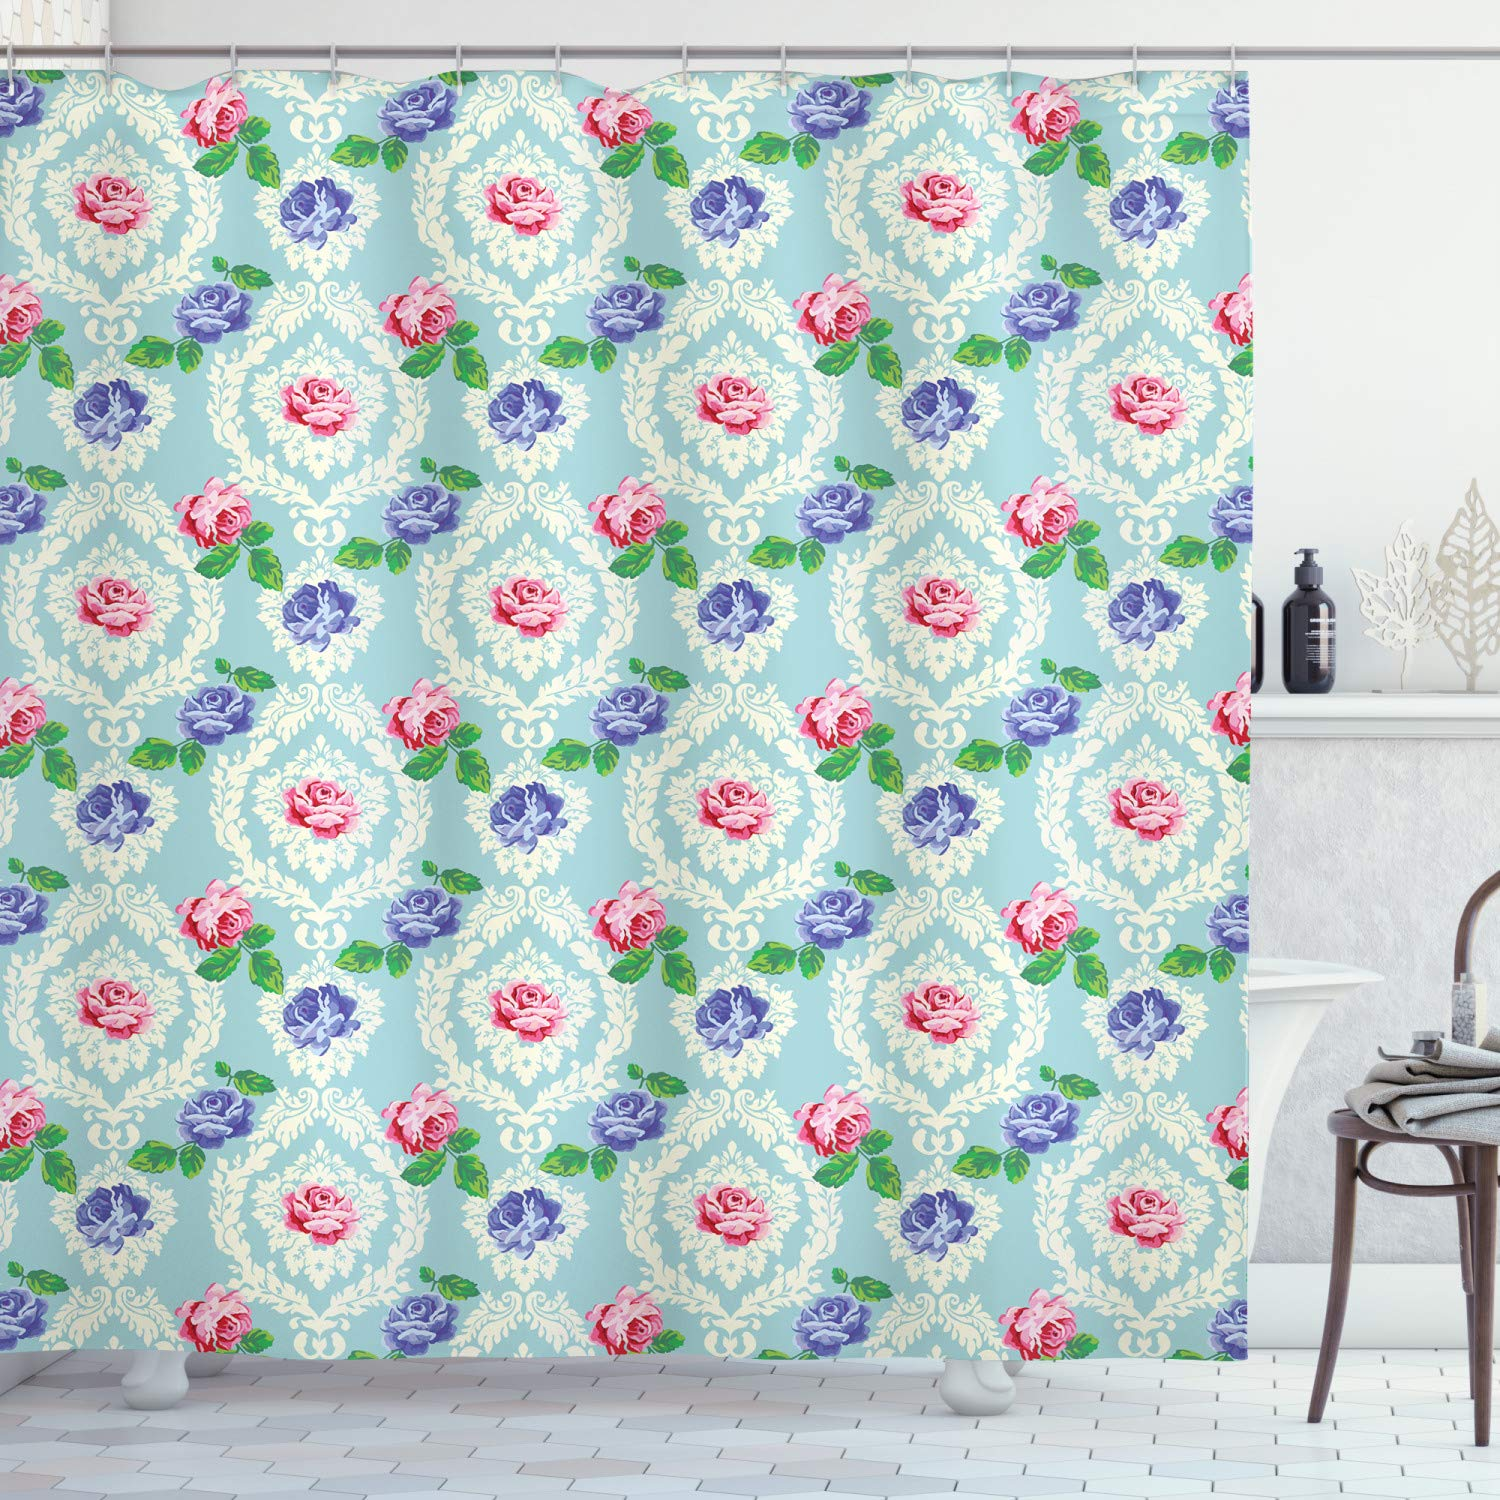 """Ambesonne Shabby Flora Shower Curtain, Baroque Inspired Colorful Roses on Victorian Pattern Fragrance Buds Art, Cloth Fabric Bathroom Decor Set with Hooks, 70"""" Long, Pale Blue"""